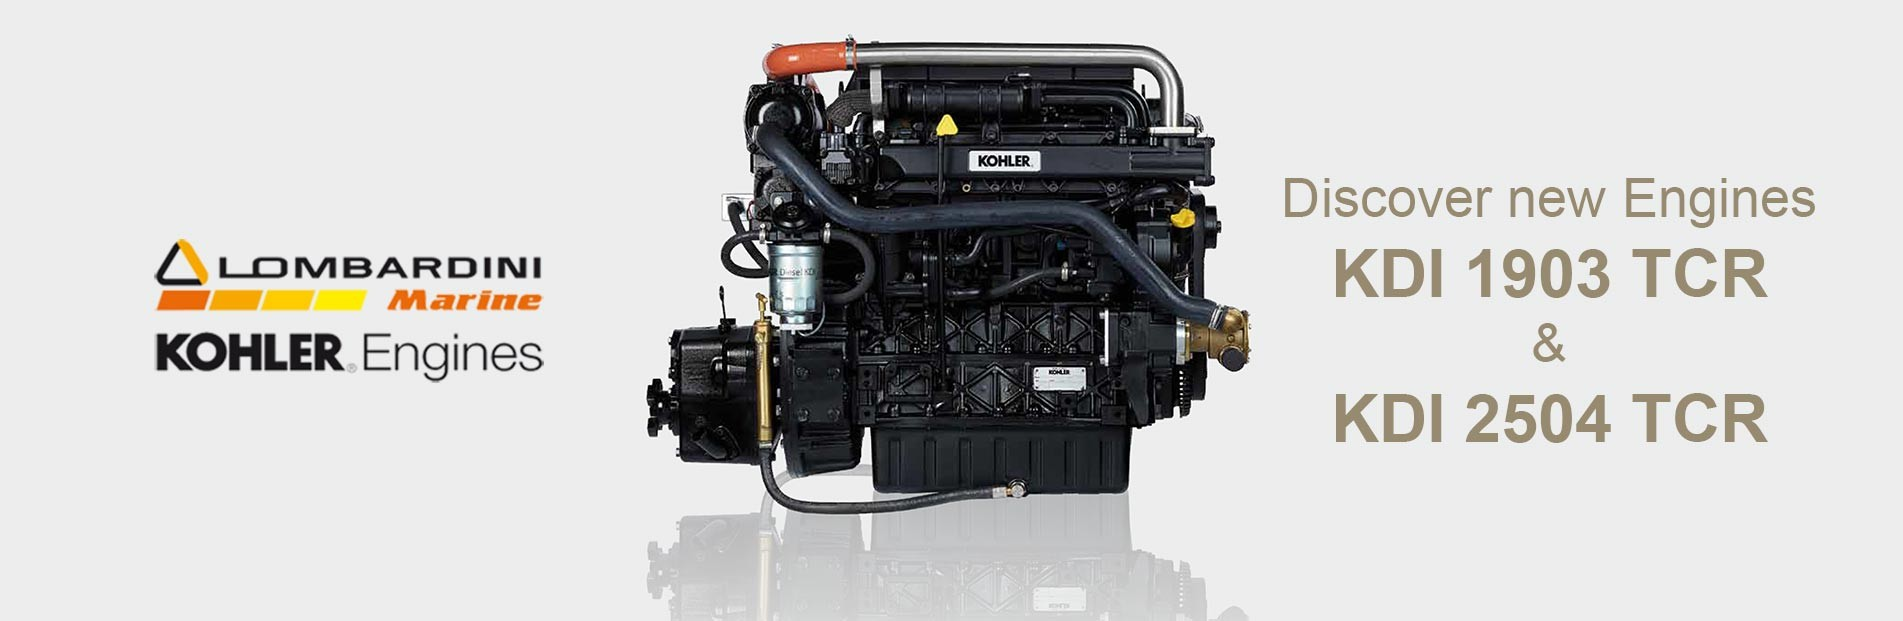 New Lombardini Marine- Kohler KDI Engines